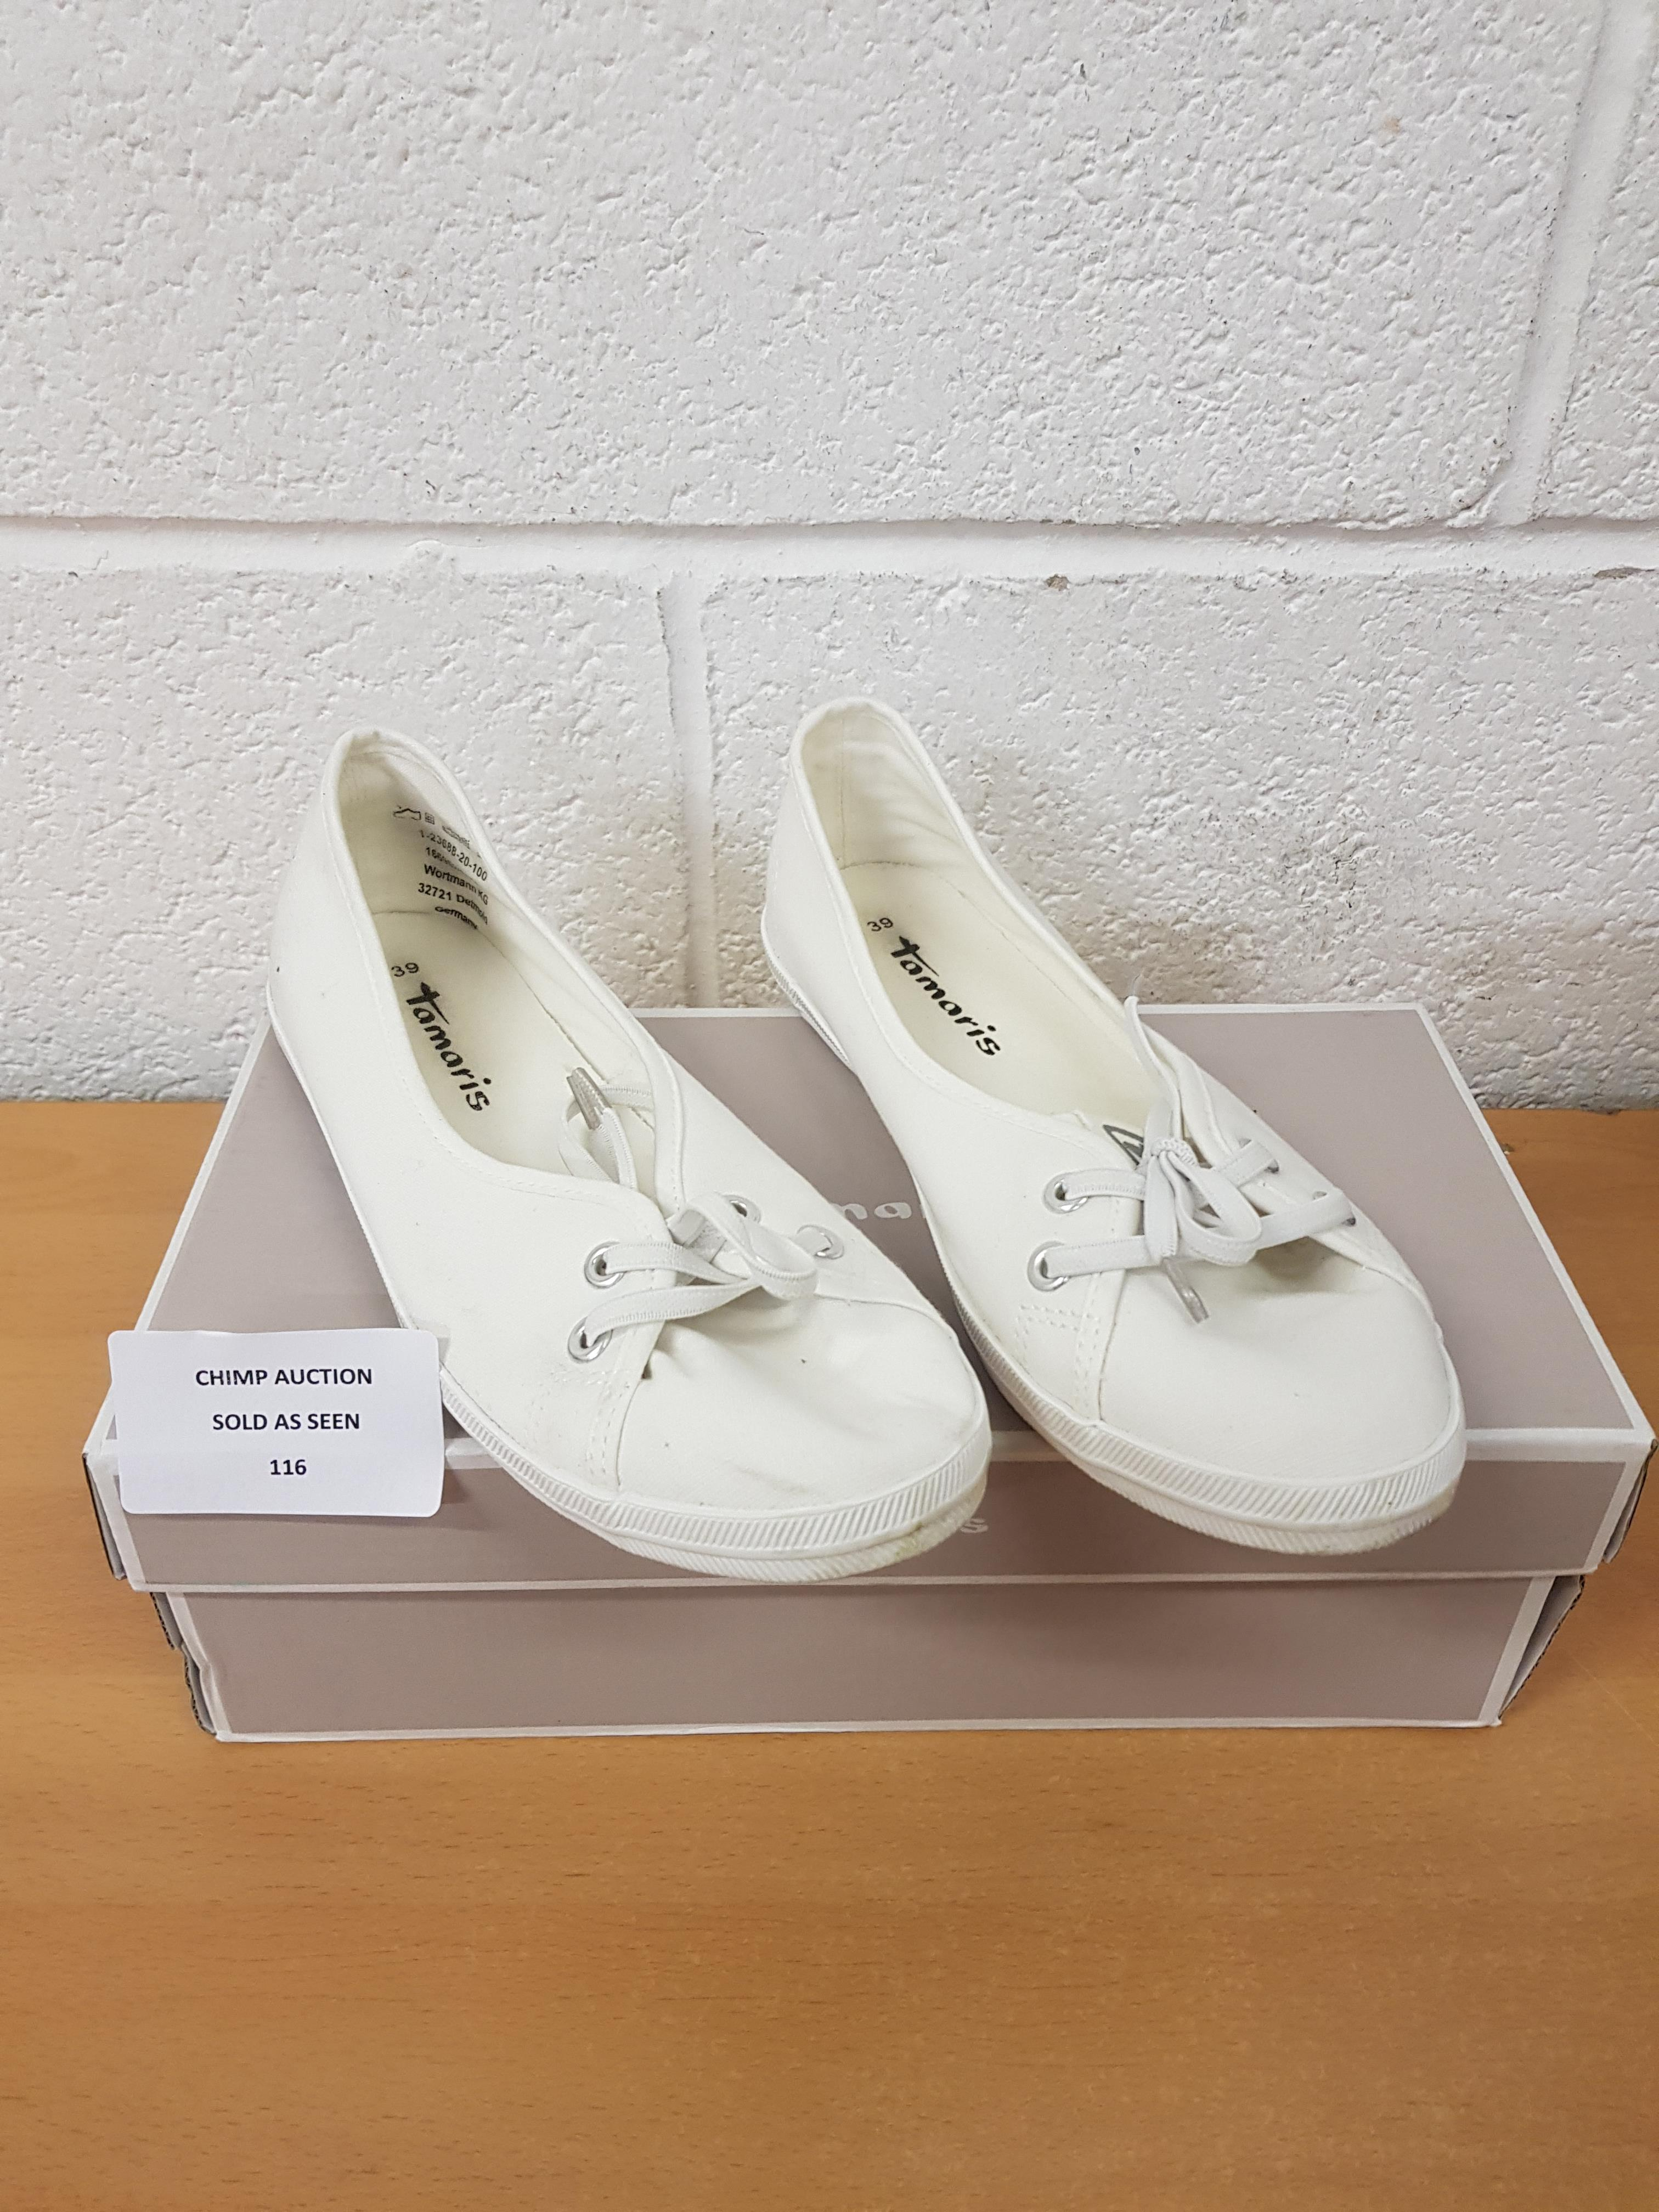 Lot 116 - Tamaris ladies shoes EU 39